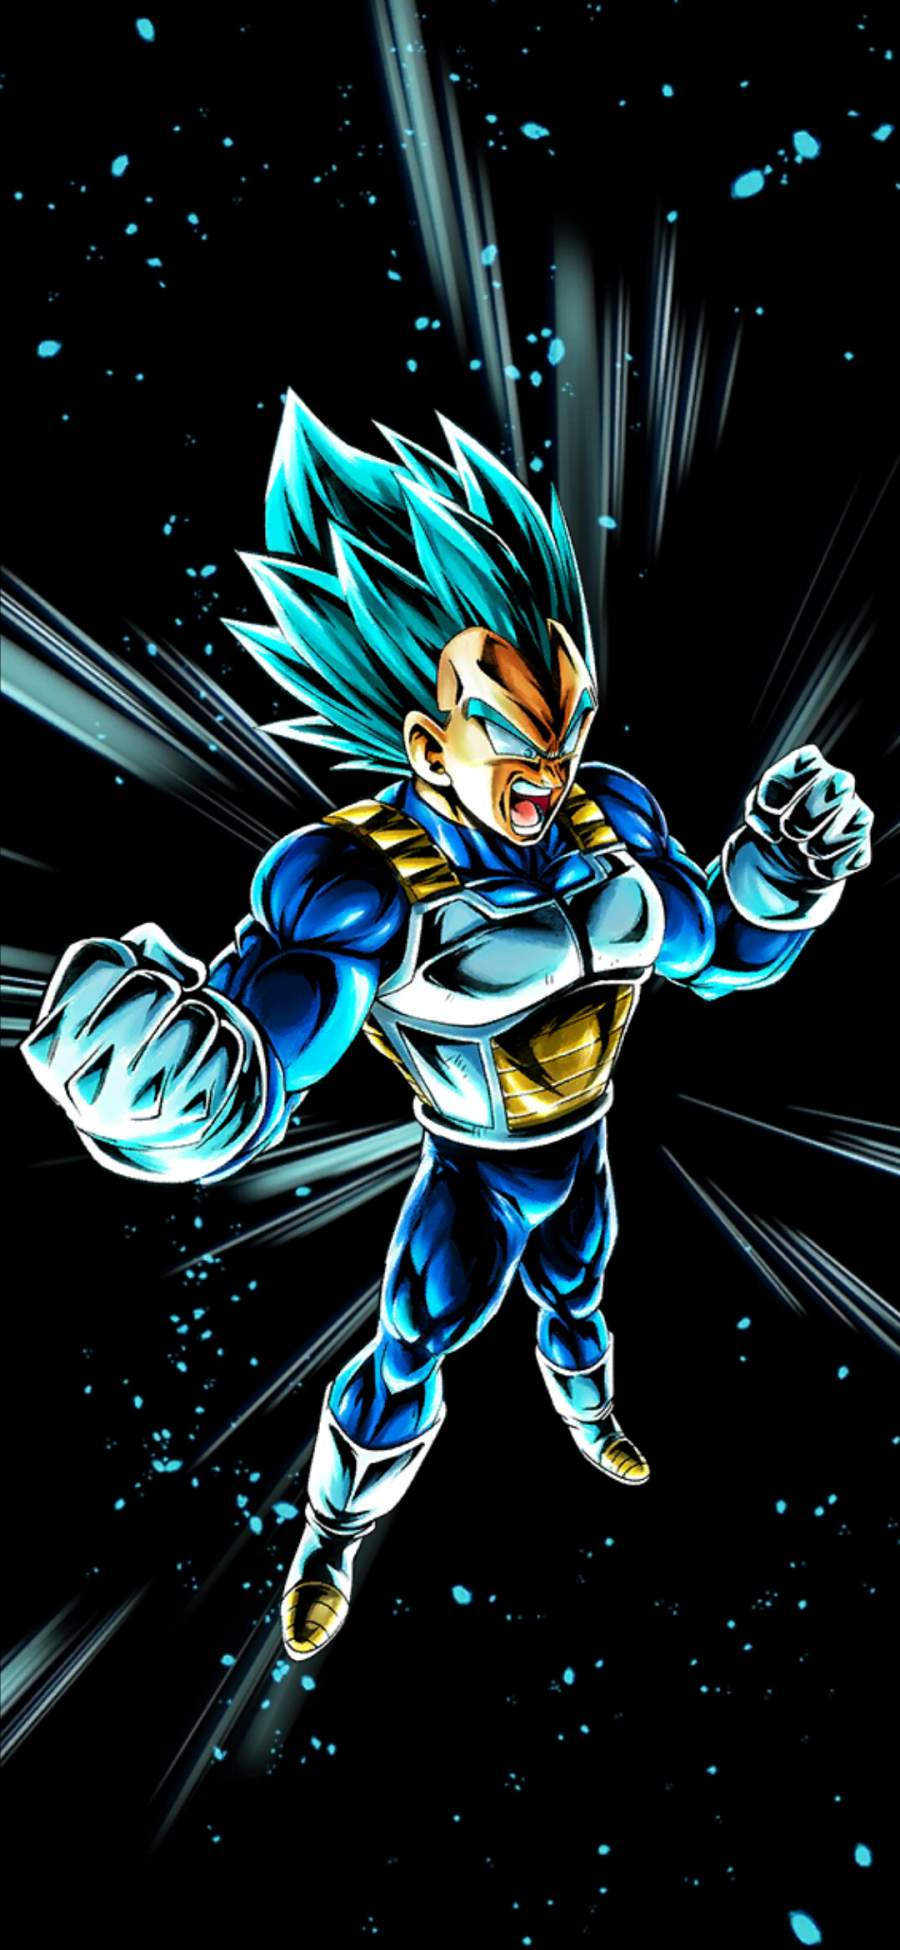 Vegeta Power iPhone Wallpaper